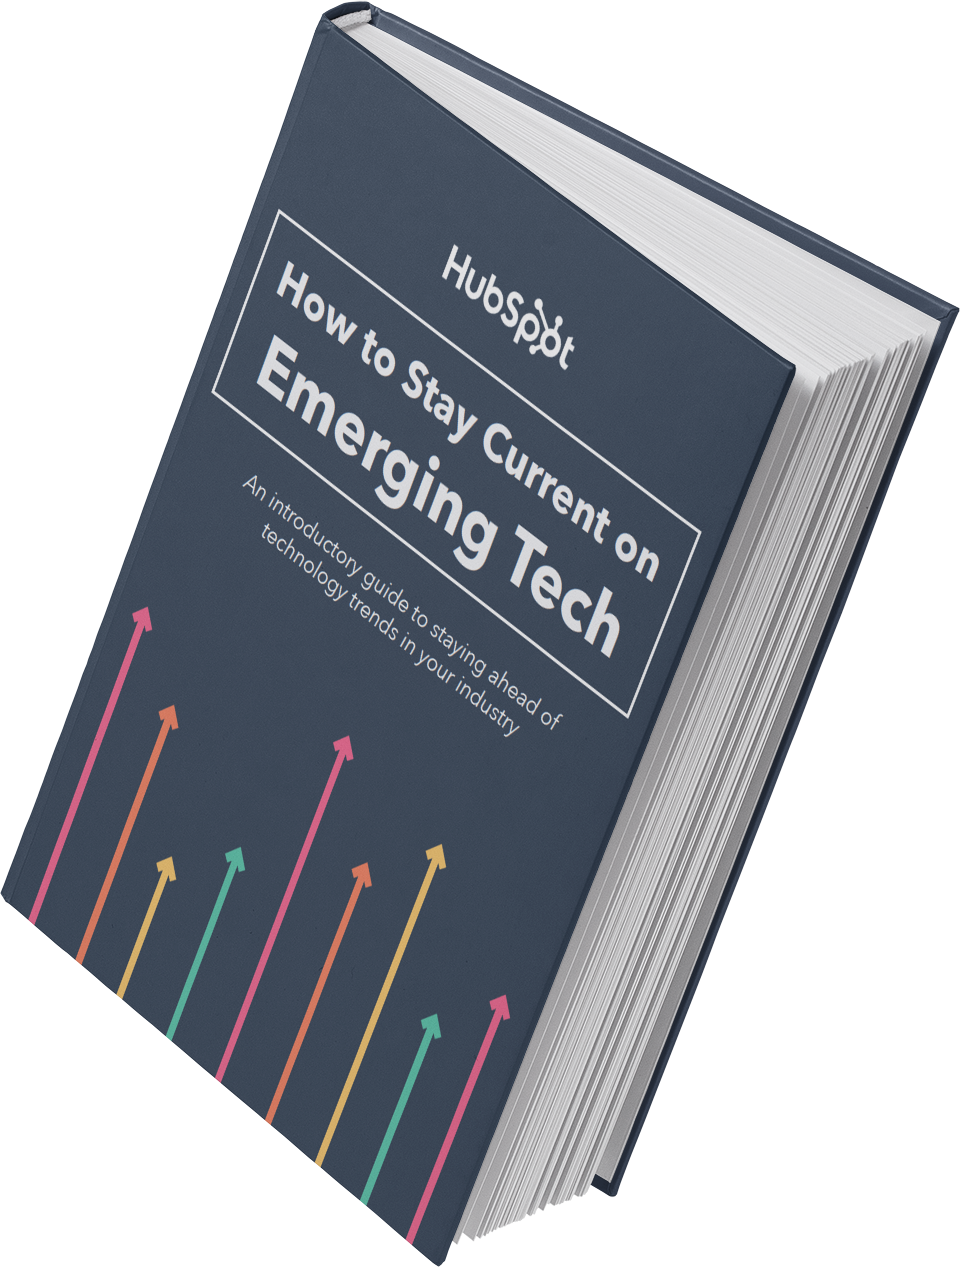 Final-Cover---How-to-Stay-Current-on-Emerging-Tech-Ebook